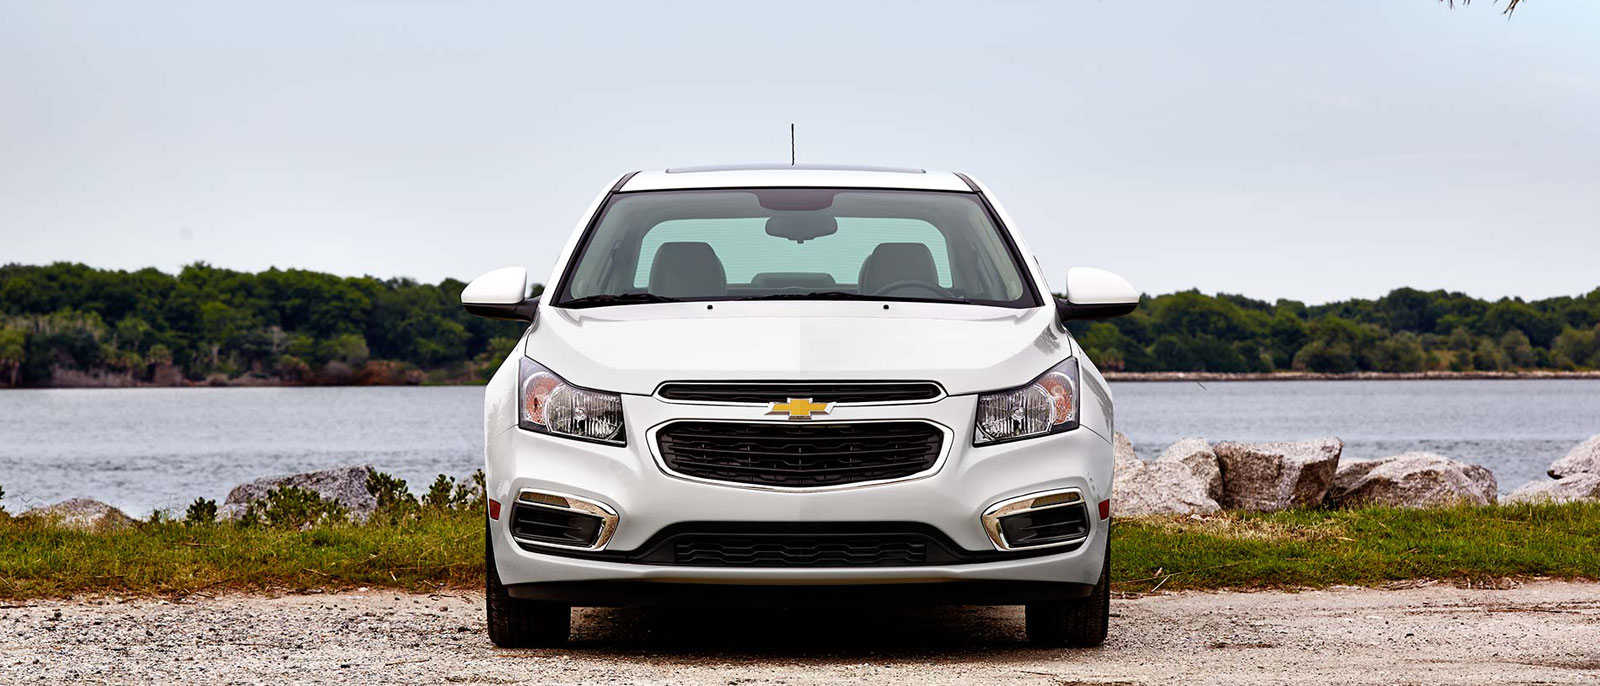 2016 Chevrolet Cruze Limited in white